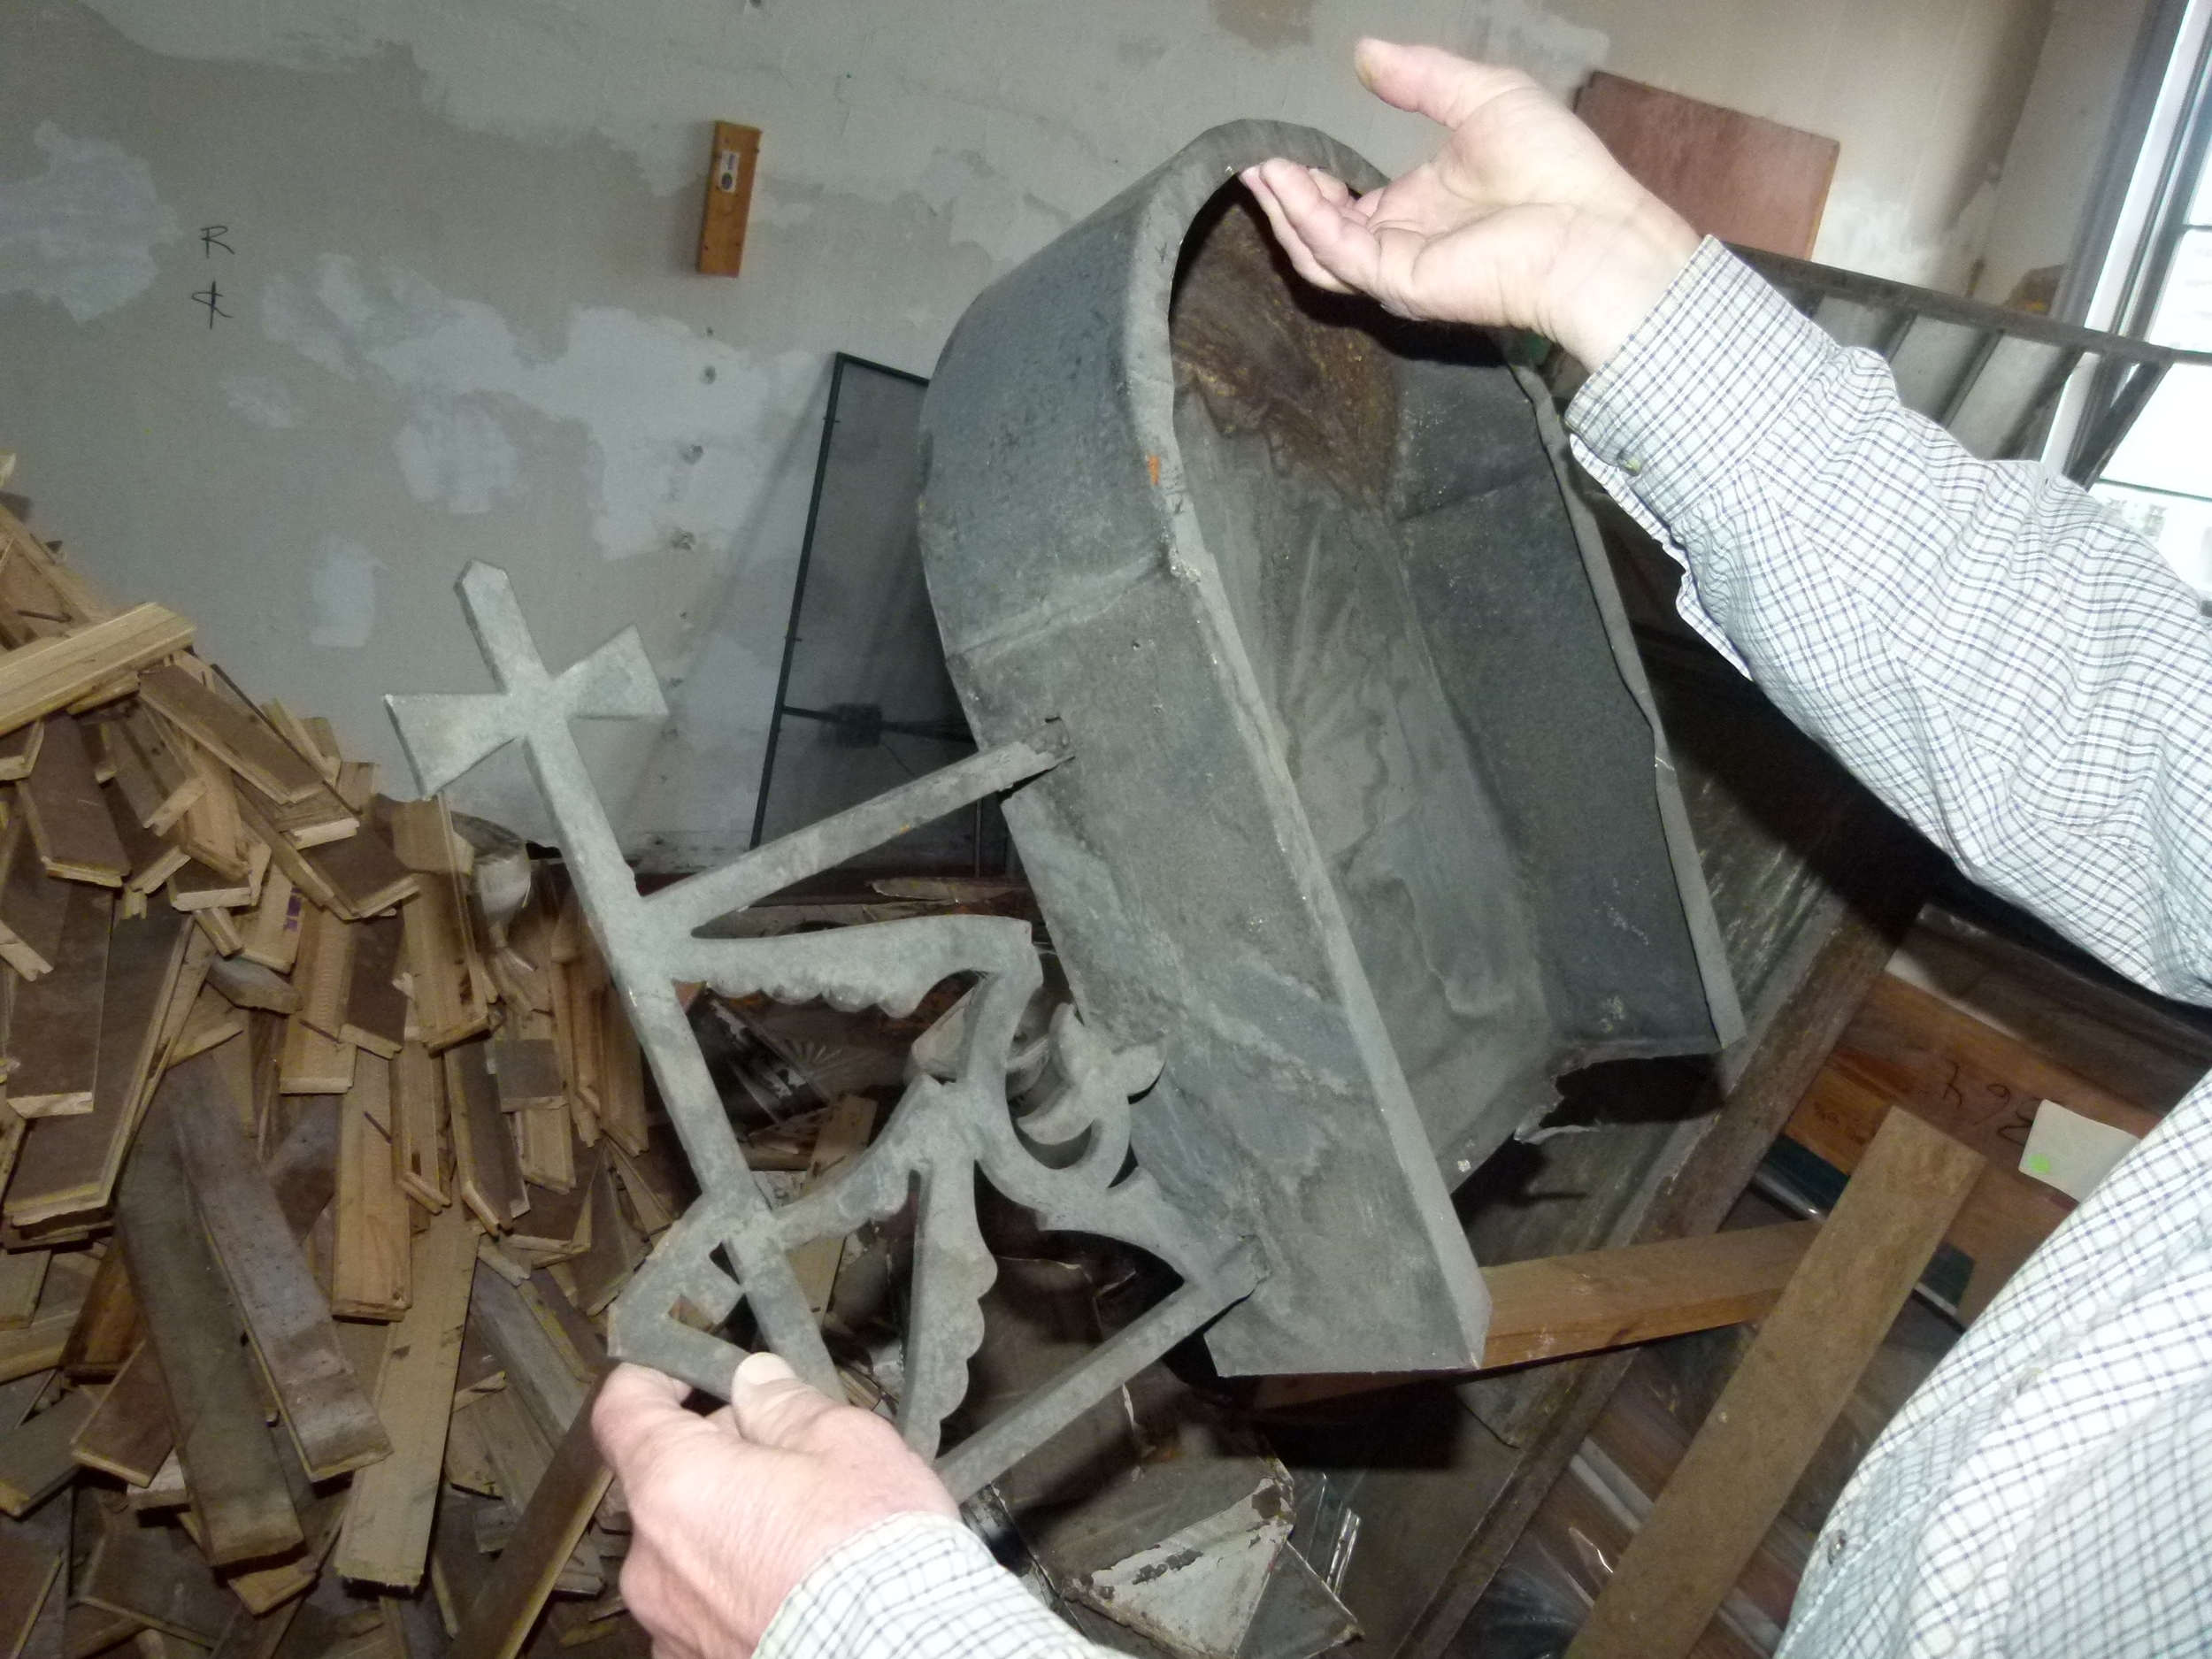 The contractor holds up the decorative metal fragment found in the 19th century building